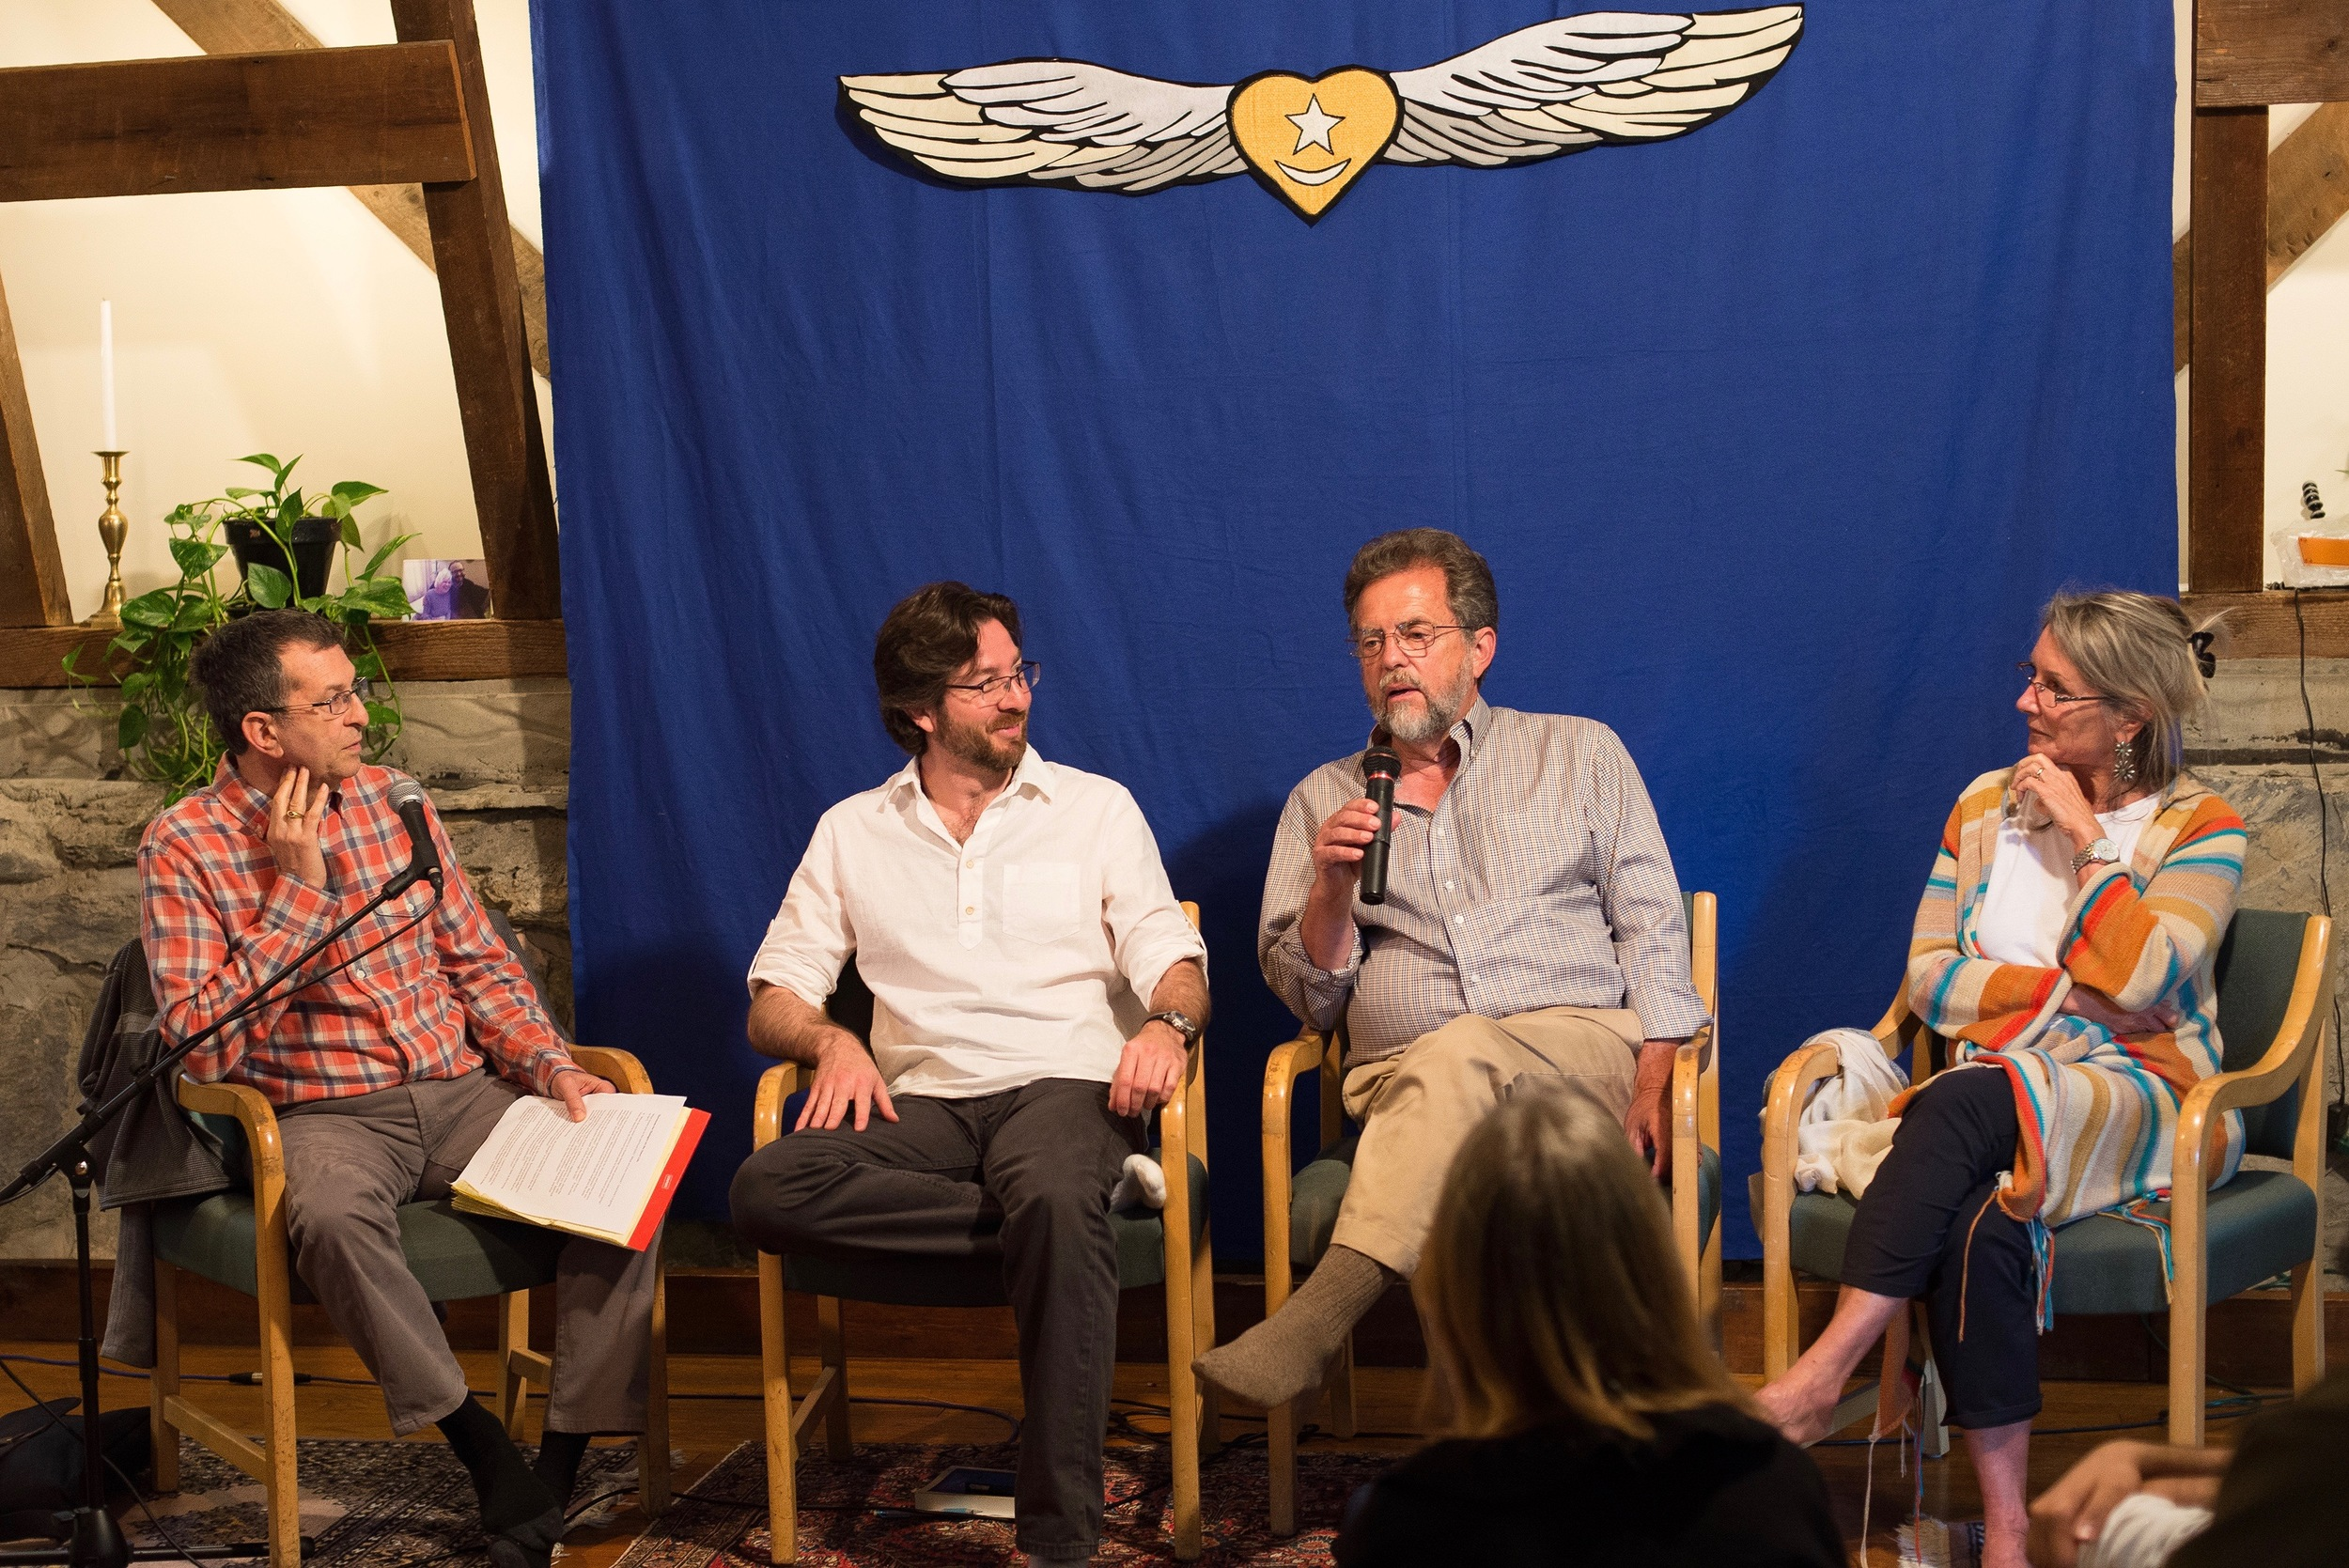 Gayan Macher, Netanel Miles-Yépez, Himayat Inayati (speaking), and   Taj Inayat during the Dialogue on the Inner Life in the Meditation Hall, Abode of the Message. Photo by Hilary Benas, 2015